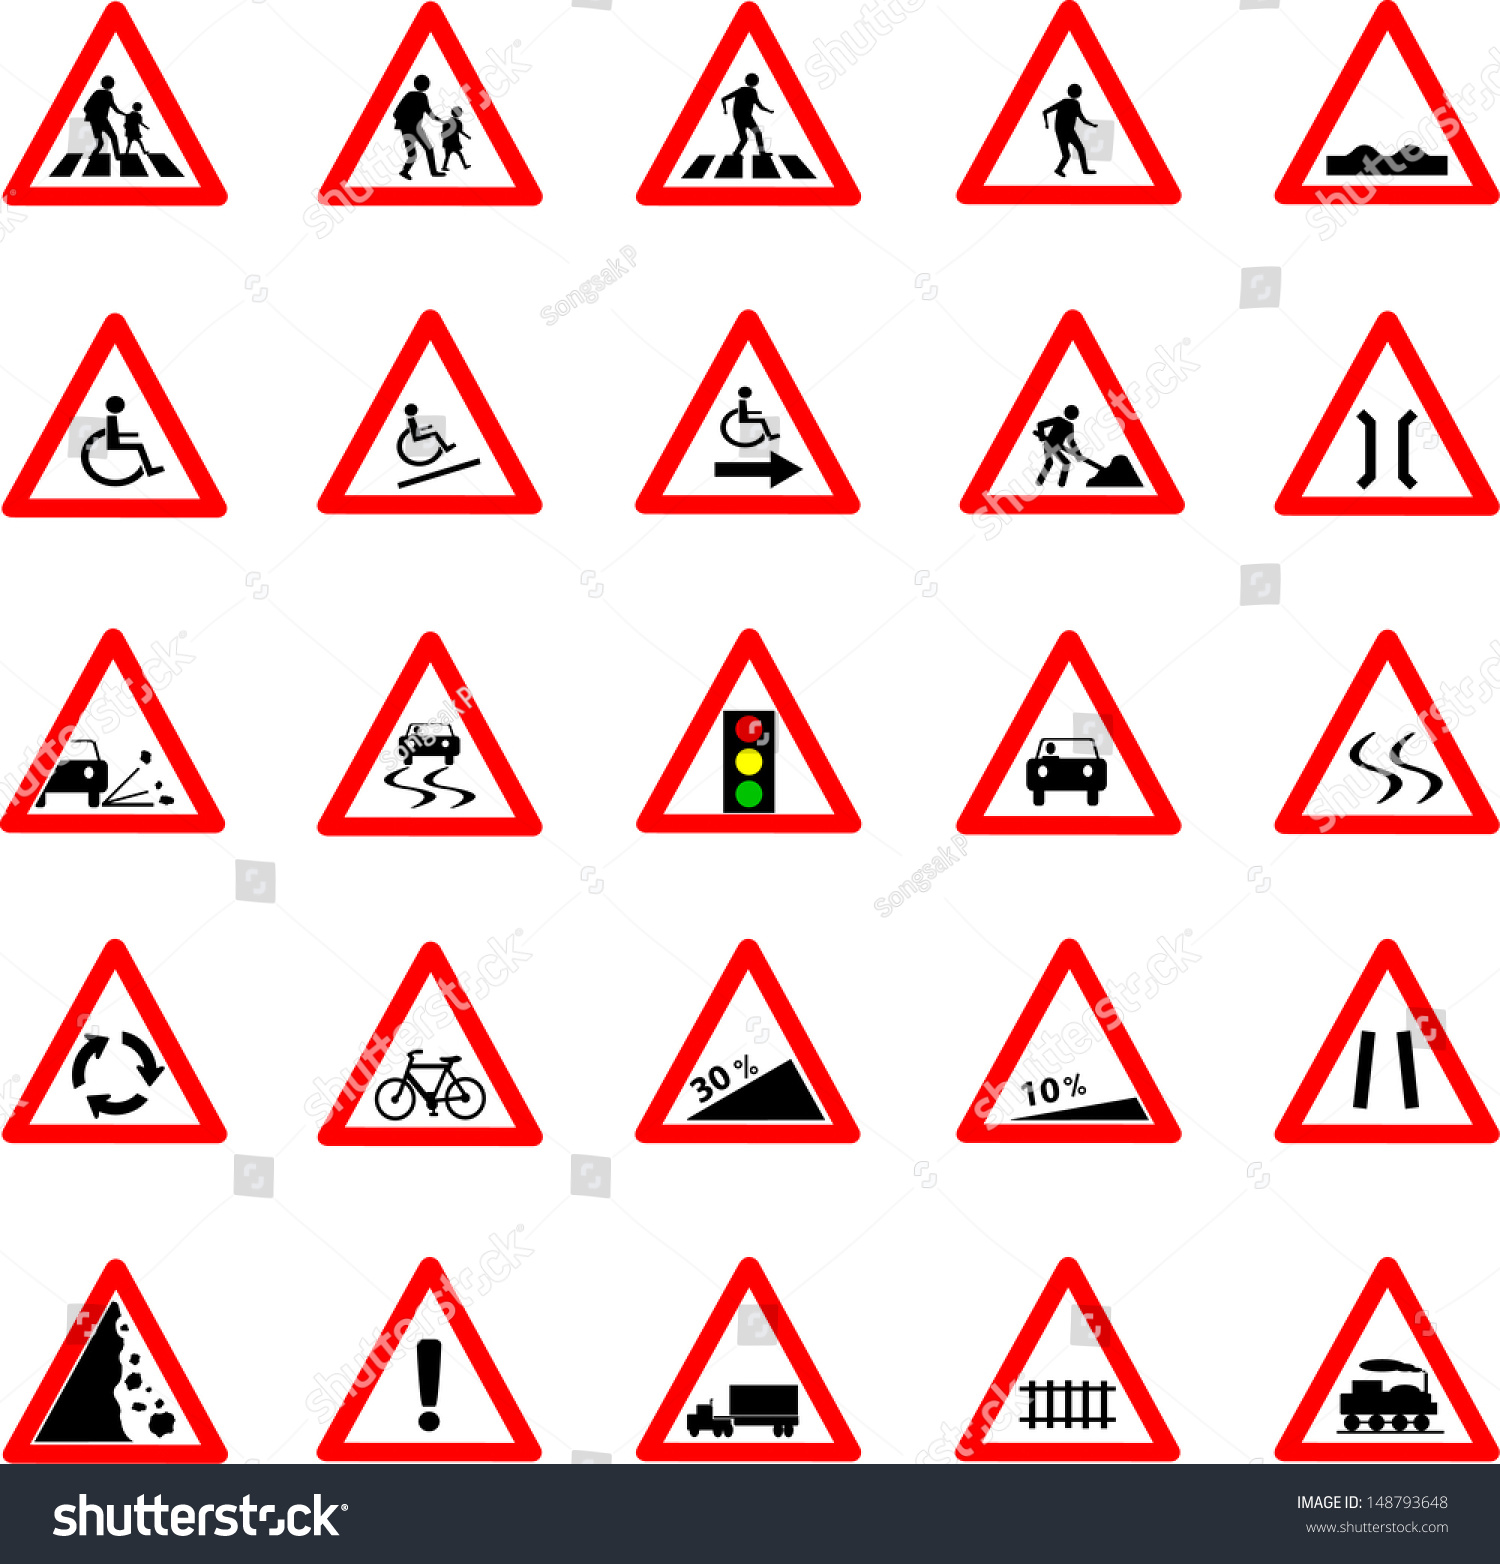 vector illustration triangle red white road stock vector